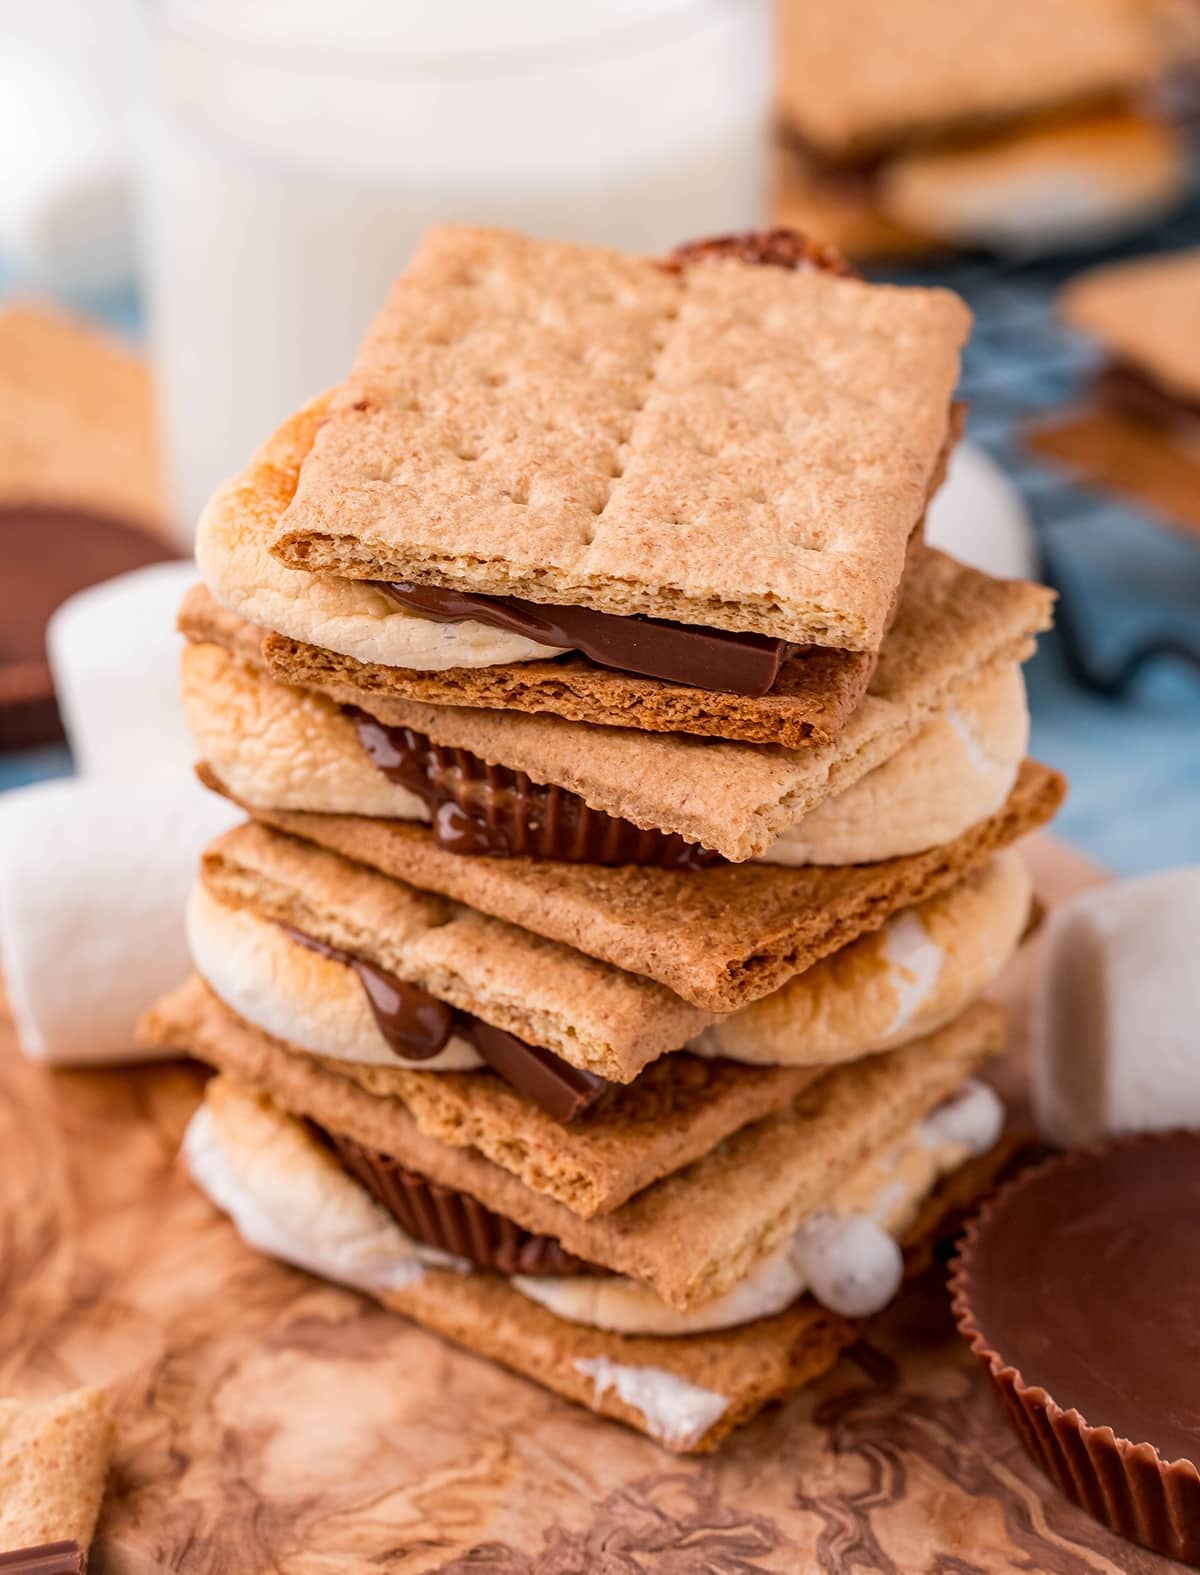 A stack of 4 s'mores on top of each other on a wooden board.